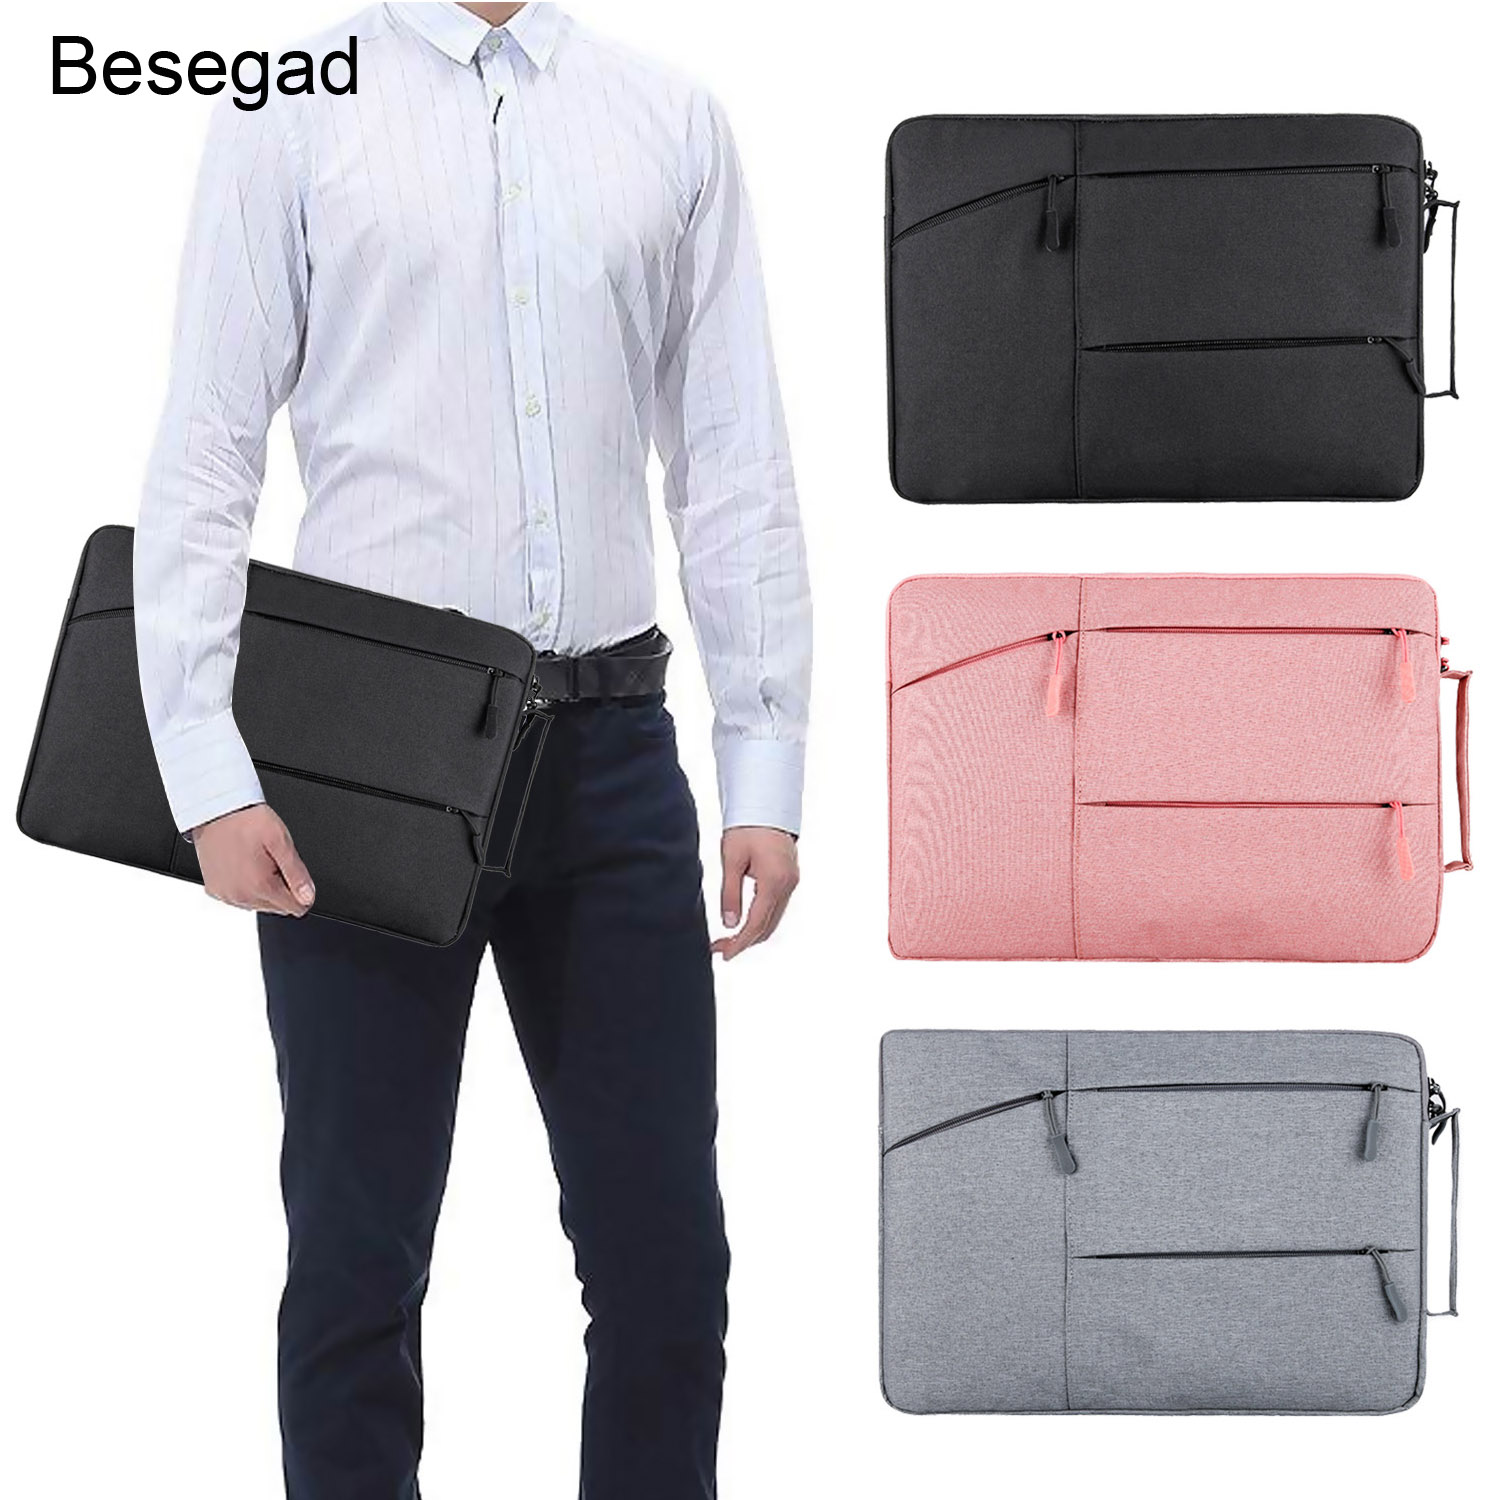 Besegad Multi-Function Laptop Sleeve Handbag Case Cover Bag with Side Pockets for MacBook Air Pro Lenovo Dell 11.6 <font><b>13</b></font> 15.6 Inch image